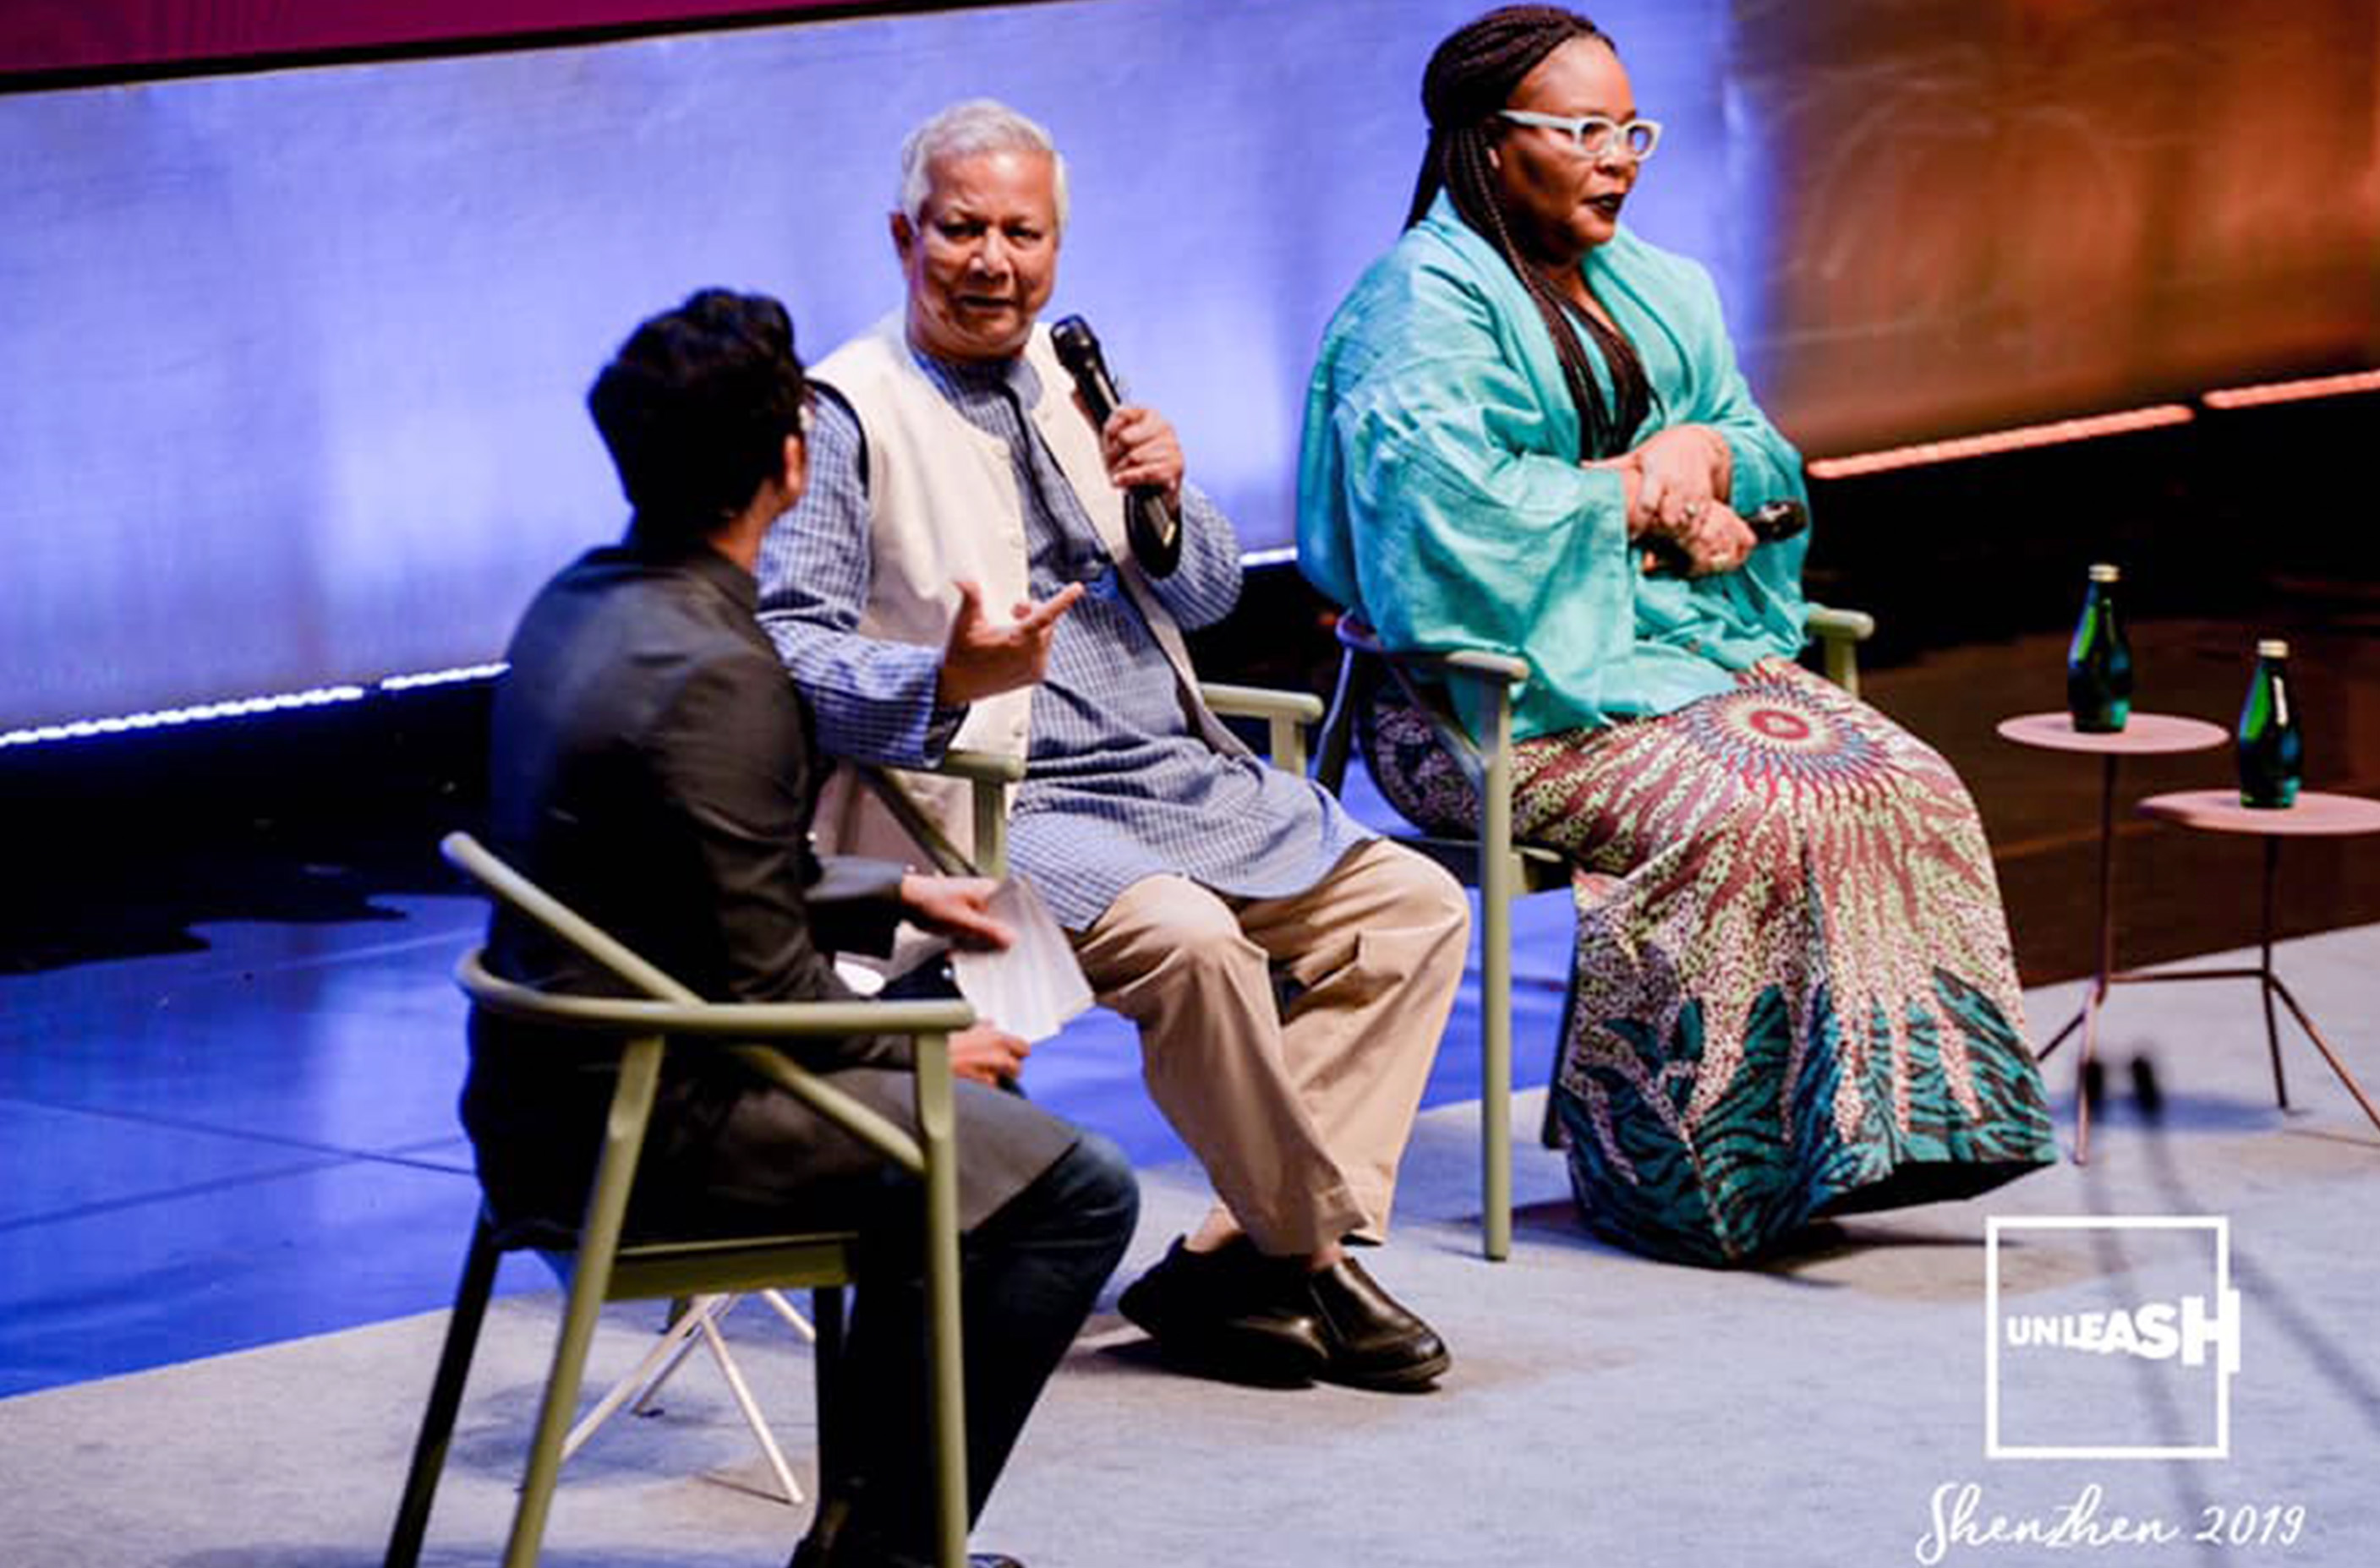 Mohammed Yunus, Bangladesh and Leymah Gbowee, Liberia respectively 2016 and 2011 Nobel Prize winners. Photo: UNLEASH